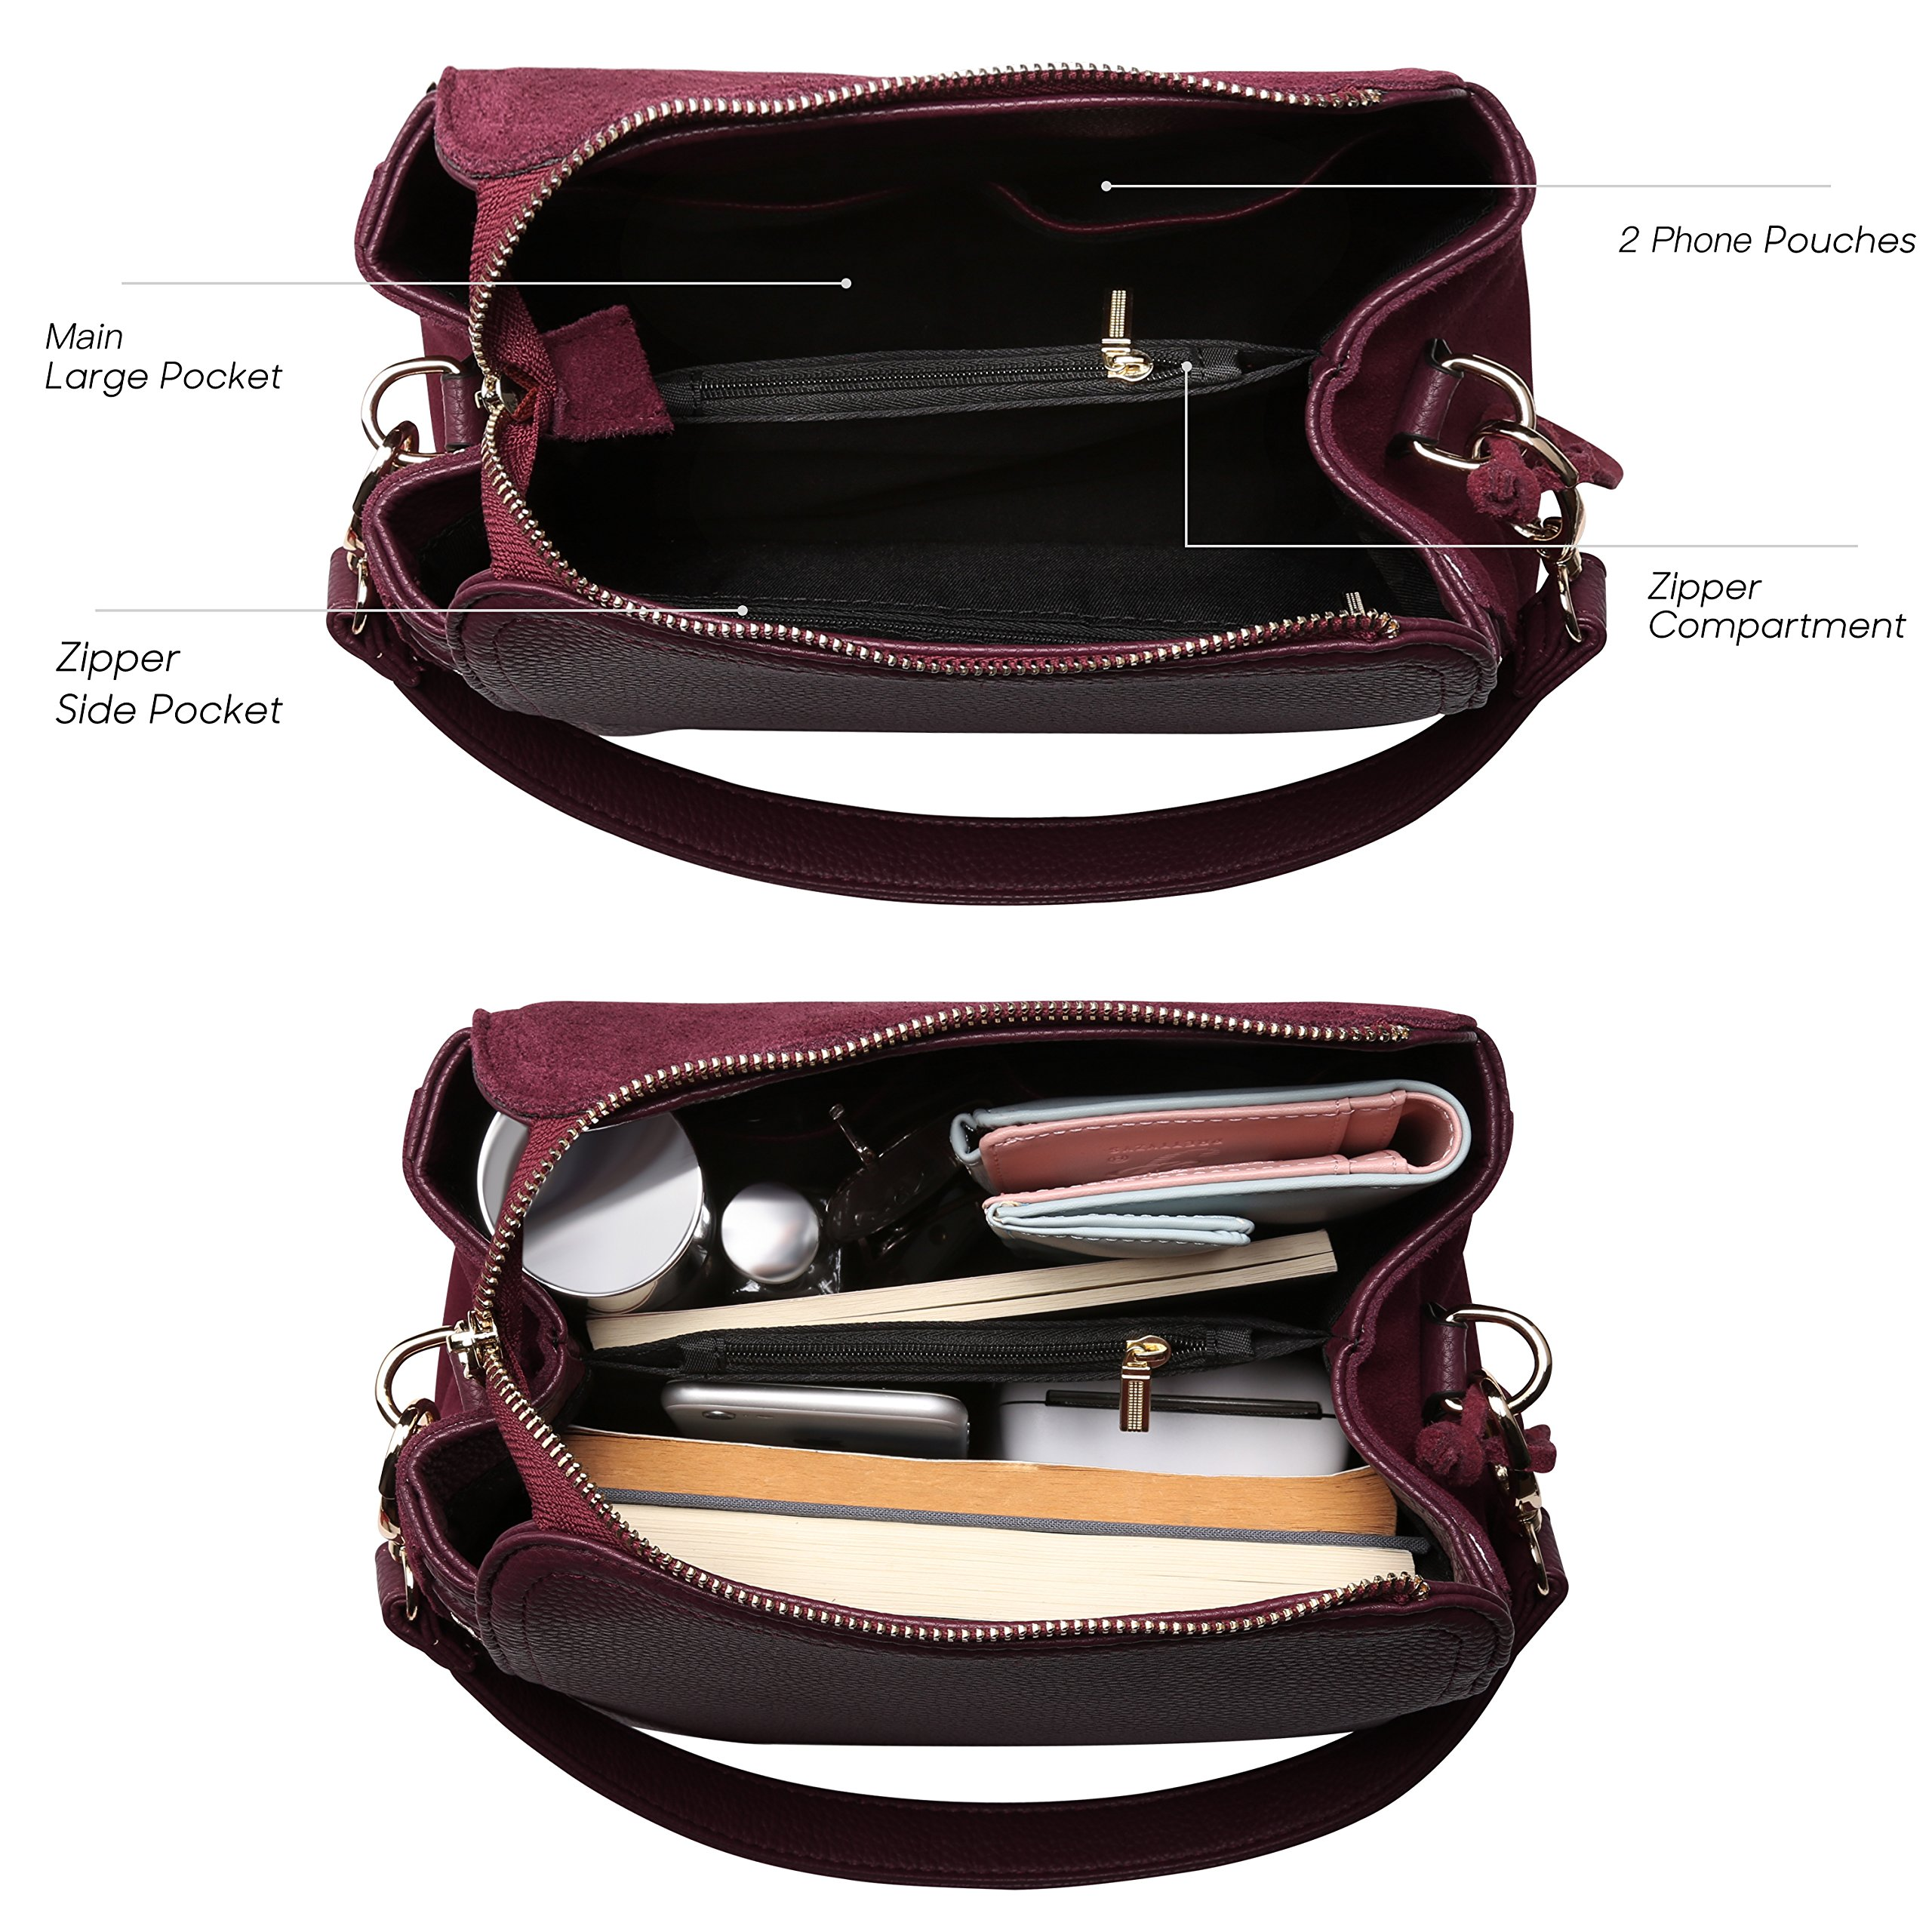 Women Real Suede Leather Shoulder Bag Leisure Doctor Handbag For Female Girls Top-handle (Burgundy) by Nico louise (Image #5)